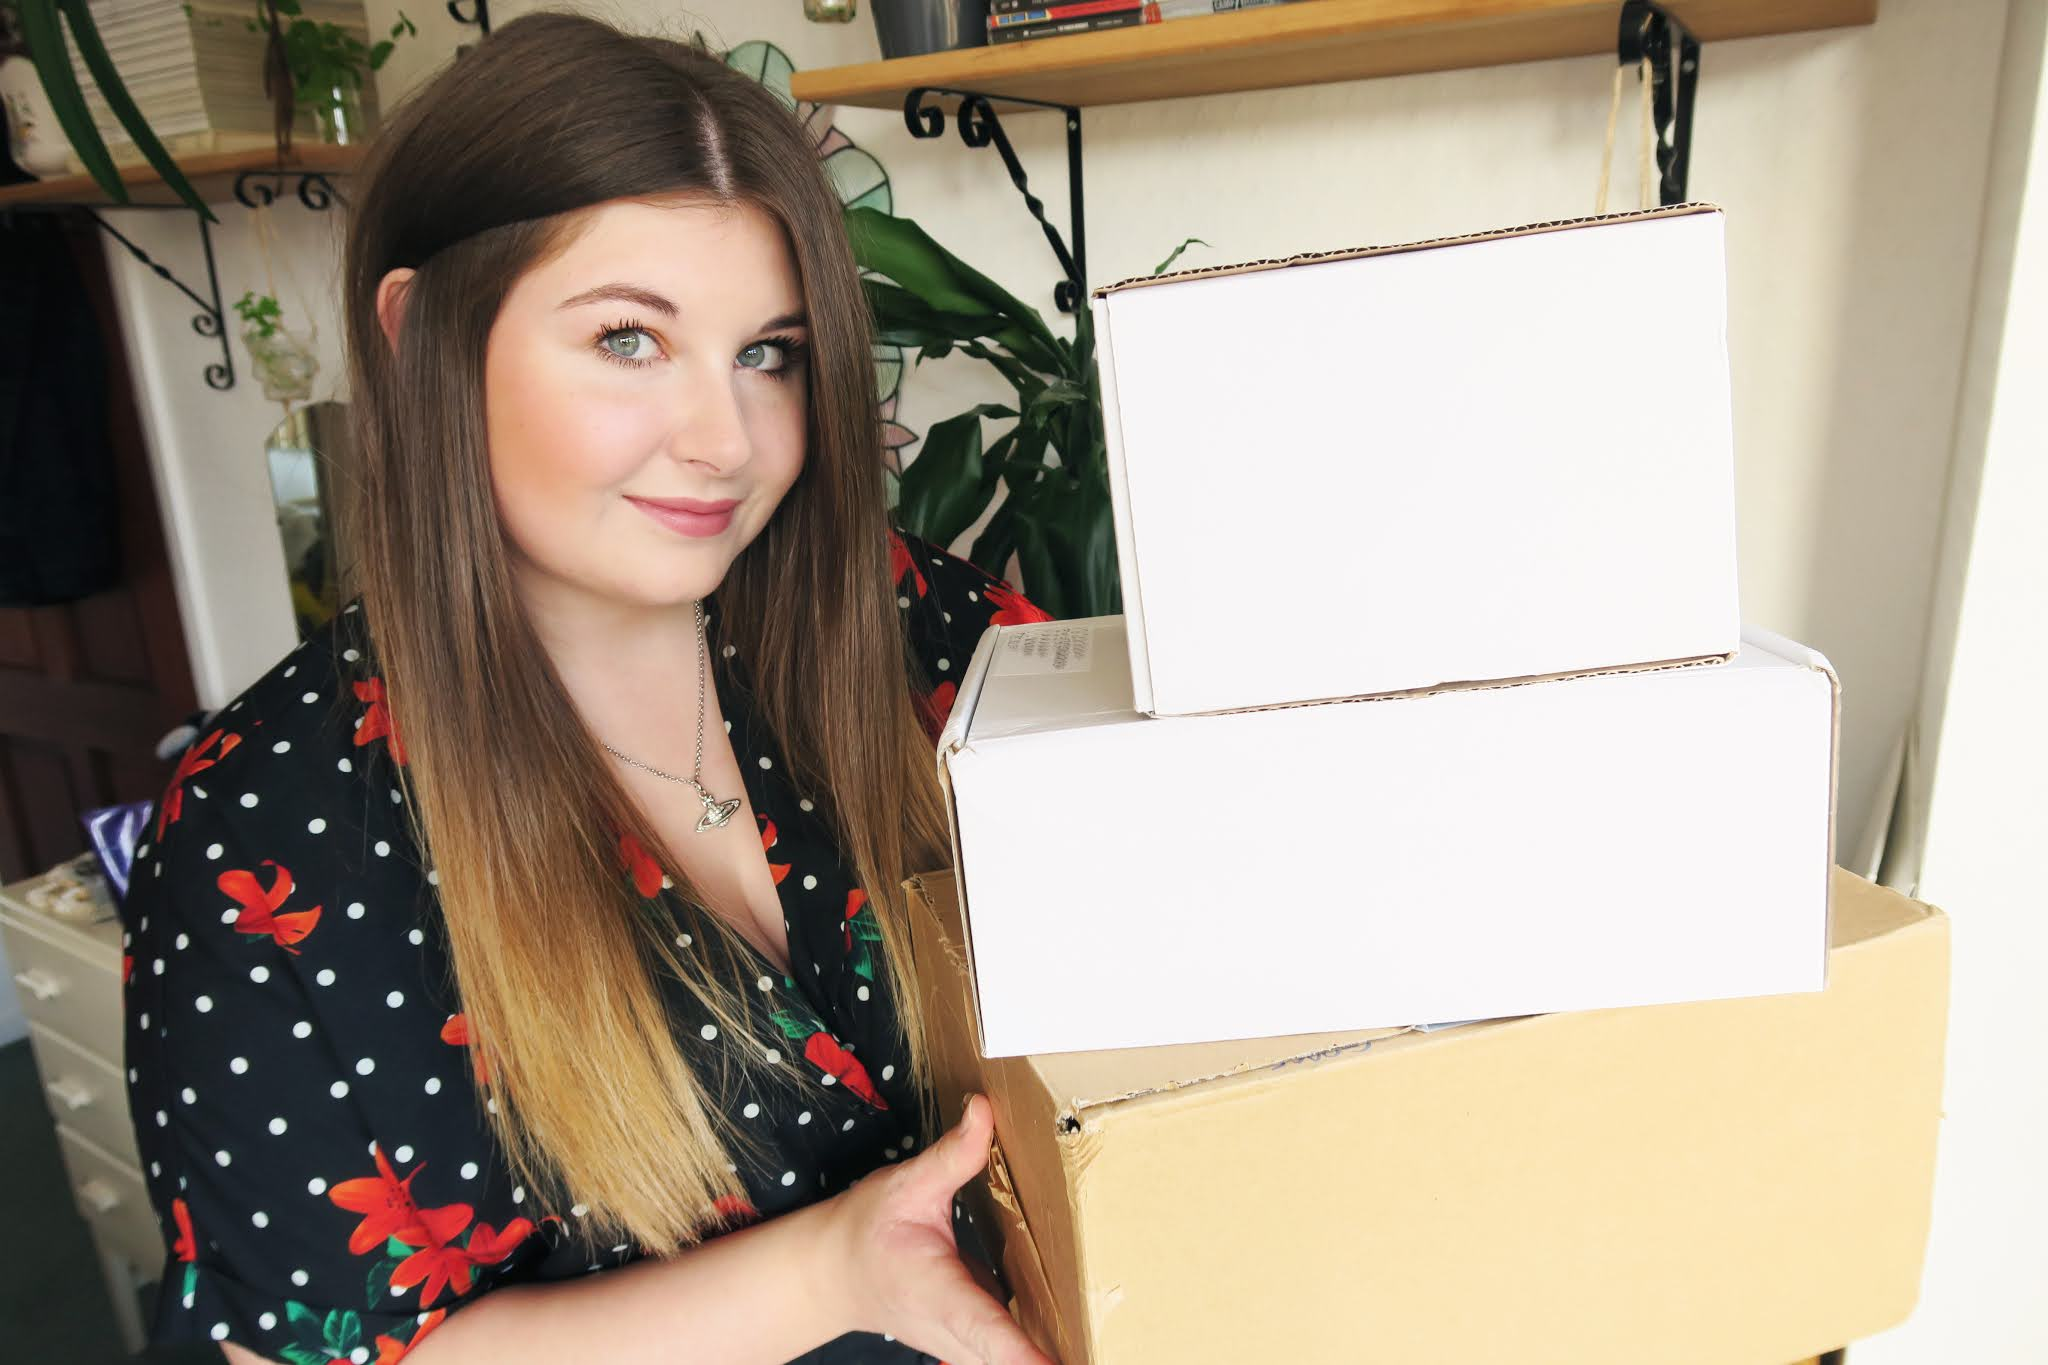 Grace is holding 3 boxes full of free PR products